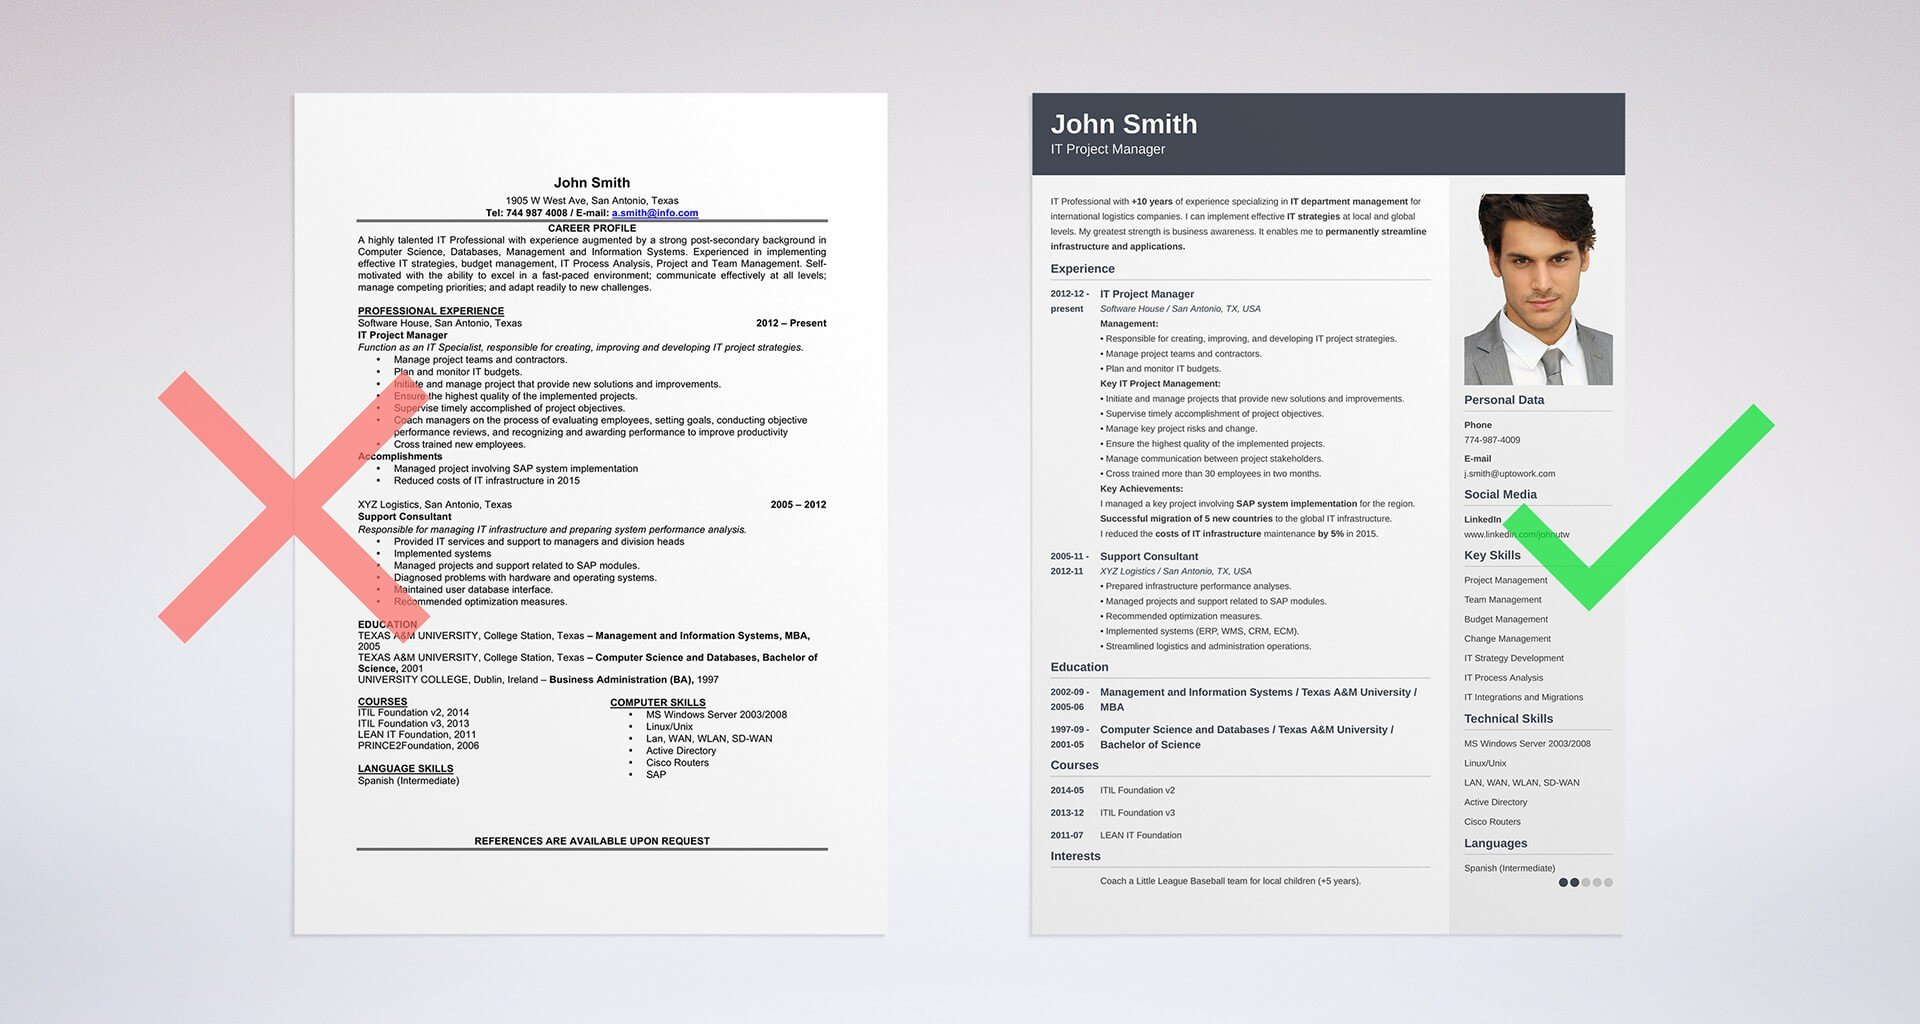 of hobbies and interests for resume cv examples personal section on portfolio vs business Resume Personal Section On Resume